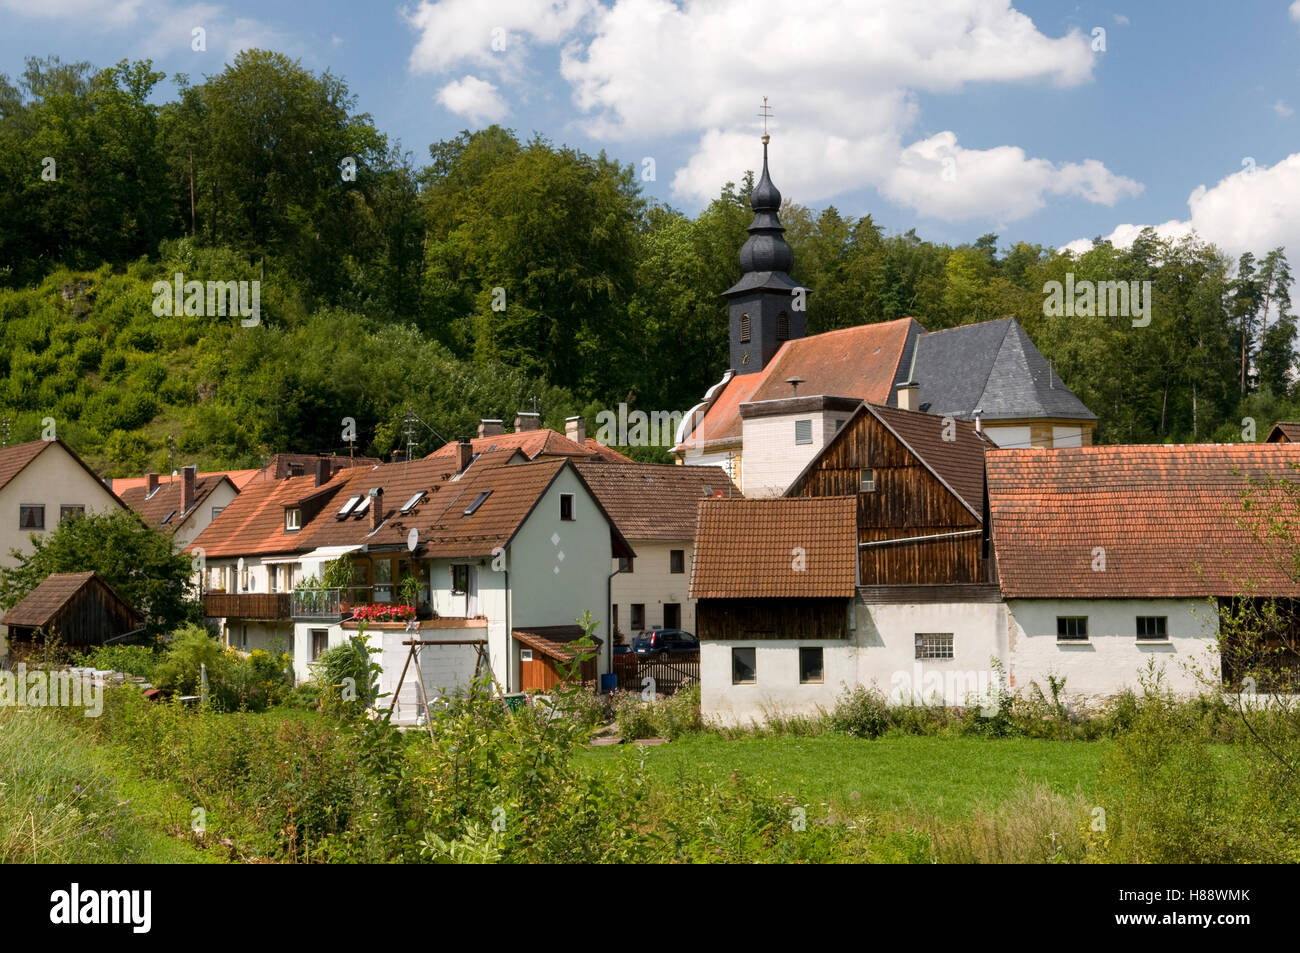 Picturesquely situated village of Oberailsfeld in the Ahorntal valley, Naturpark Fraenkische Schweiz nature preserve, - Stock Image